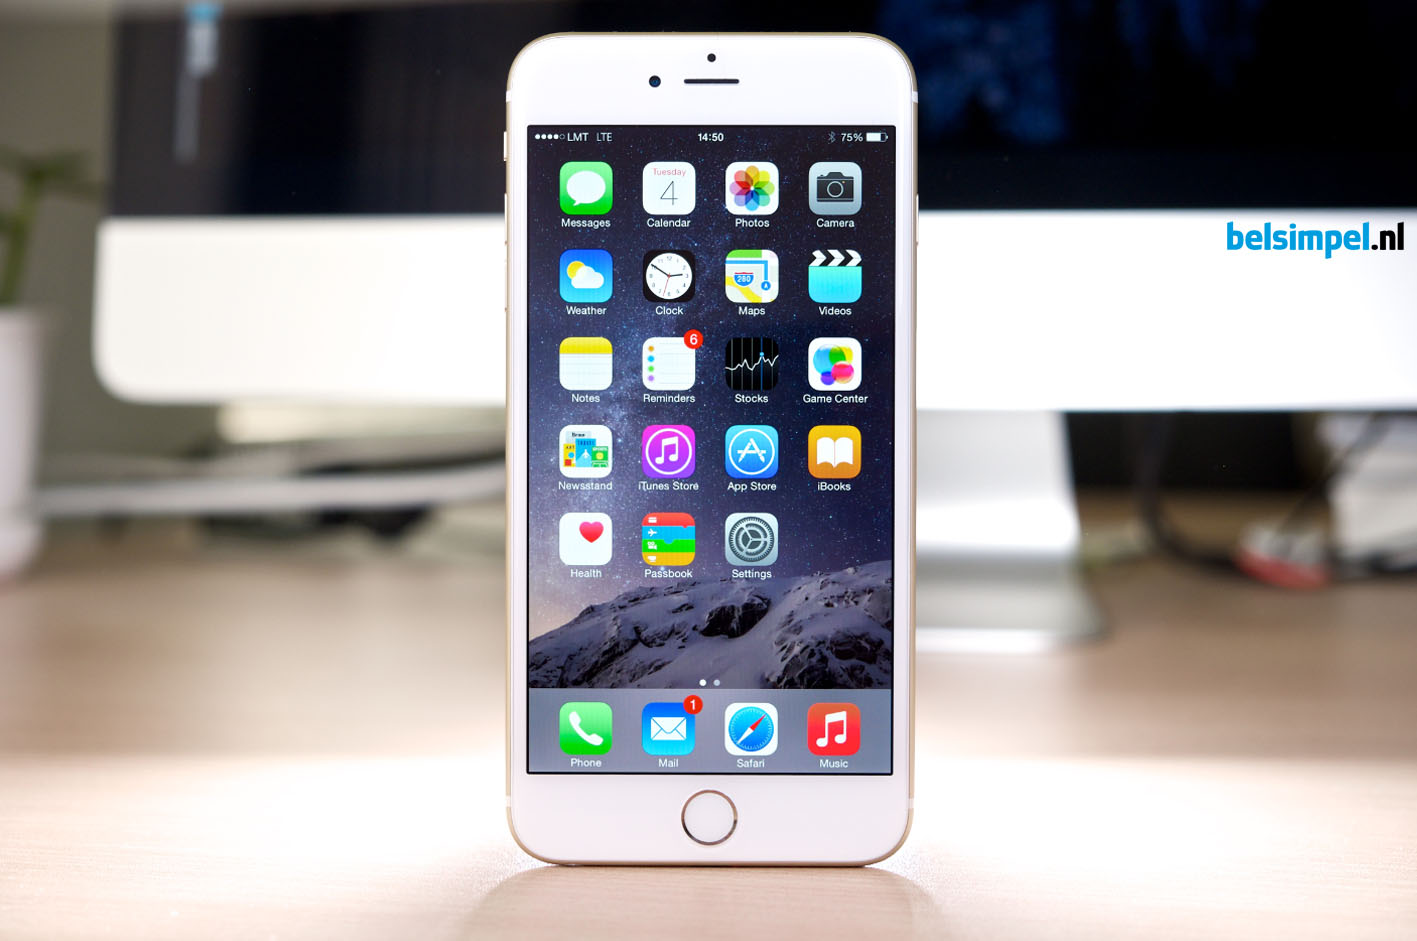 Gerucht: Apple iPhone 6S en 6S Plus iets dikker